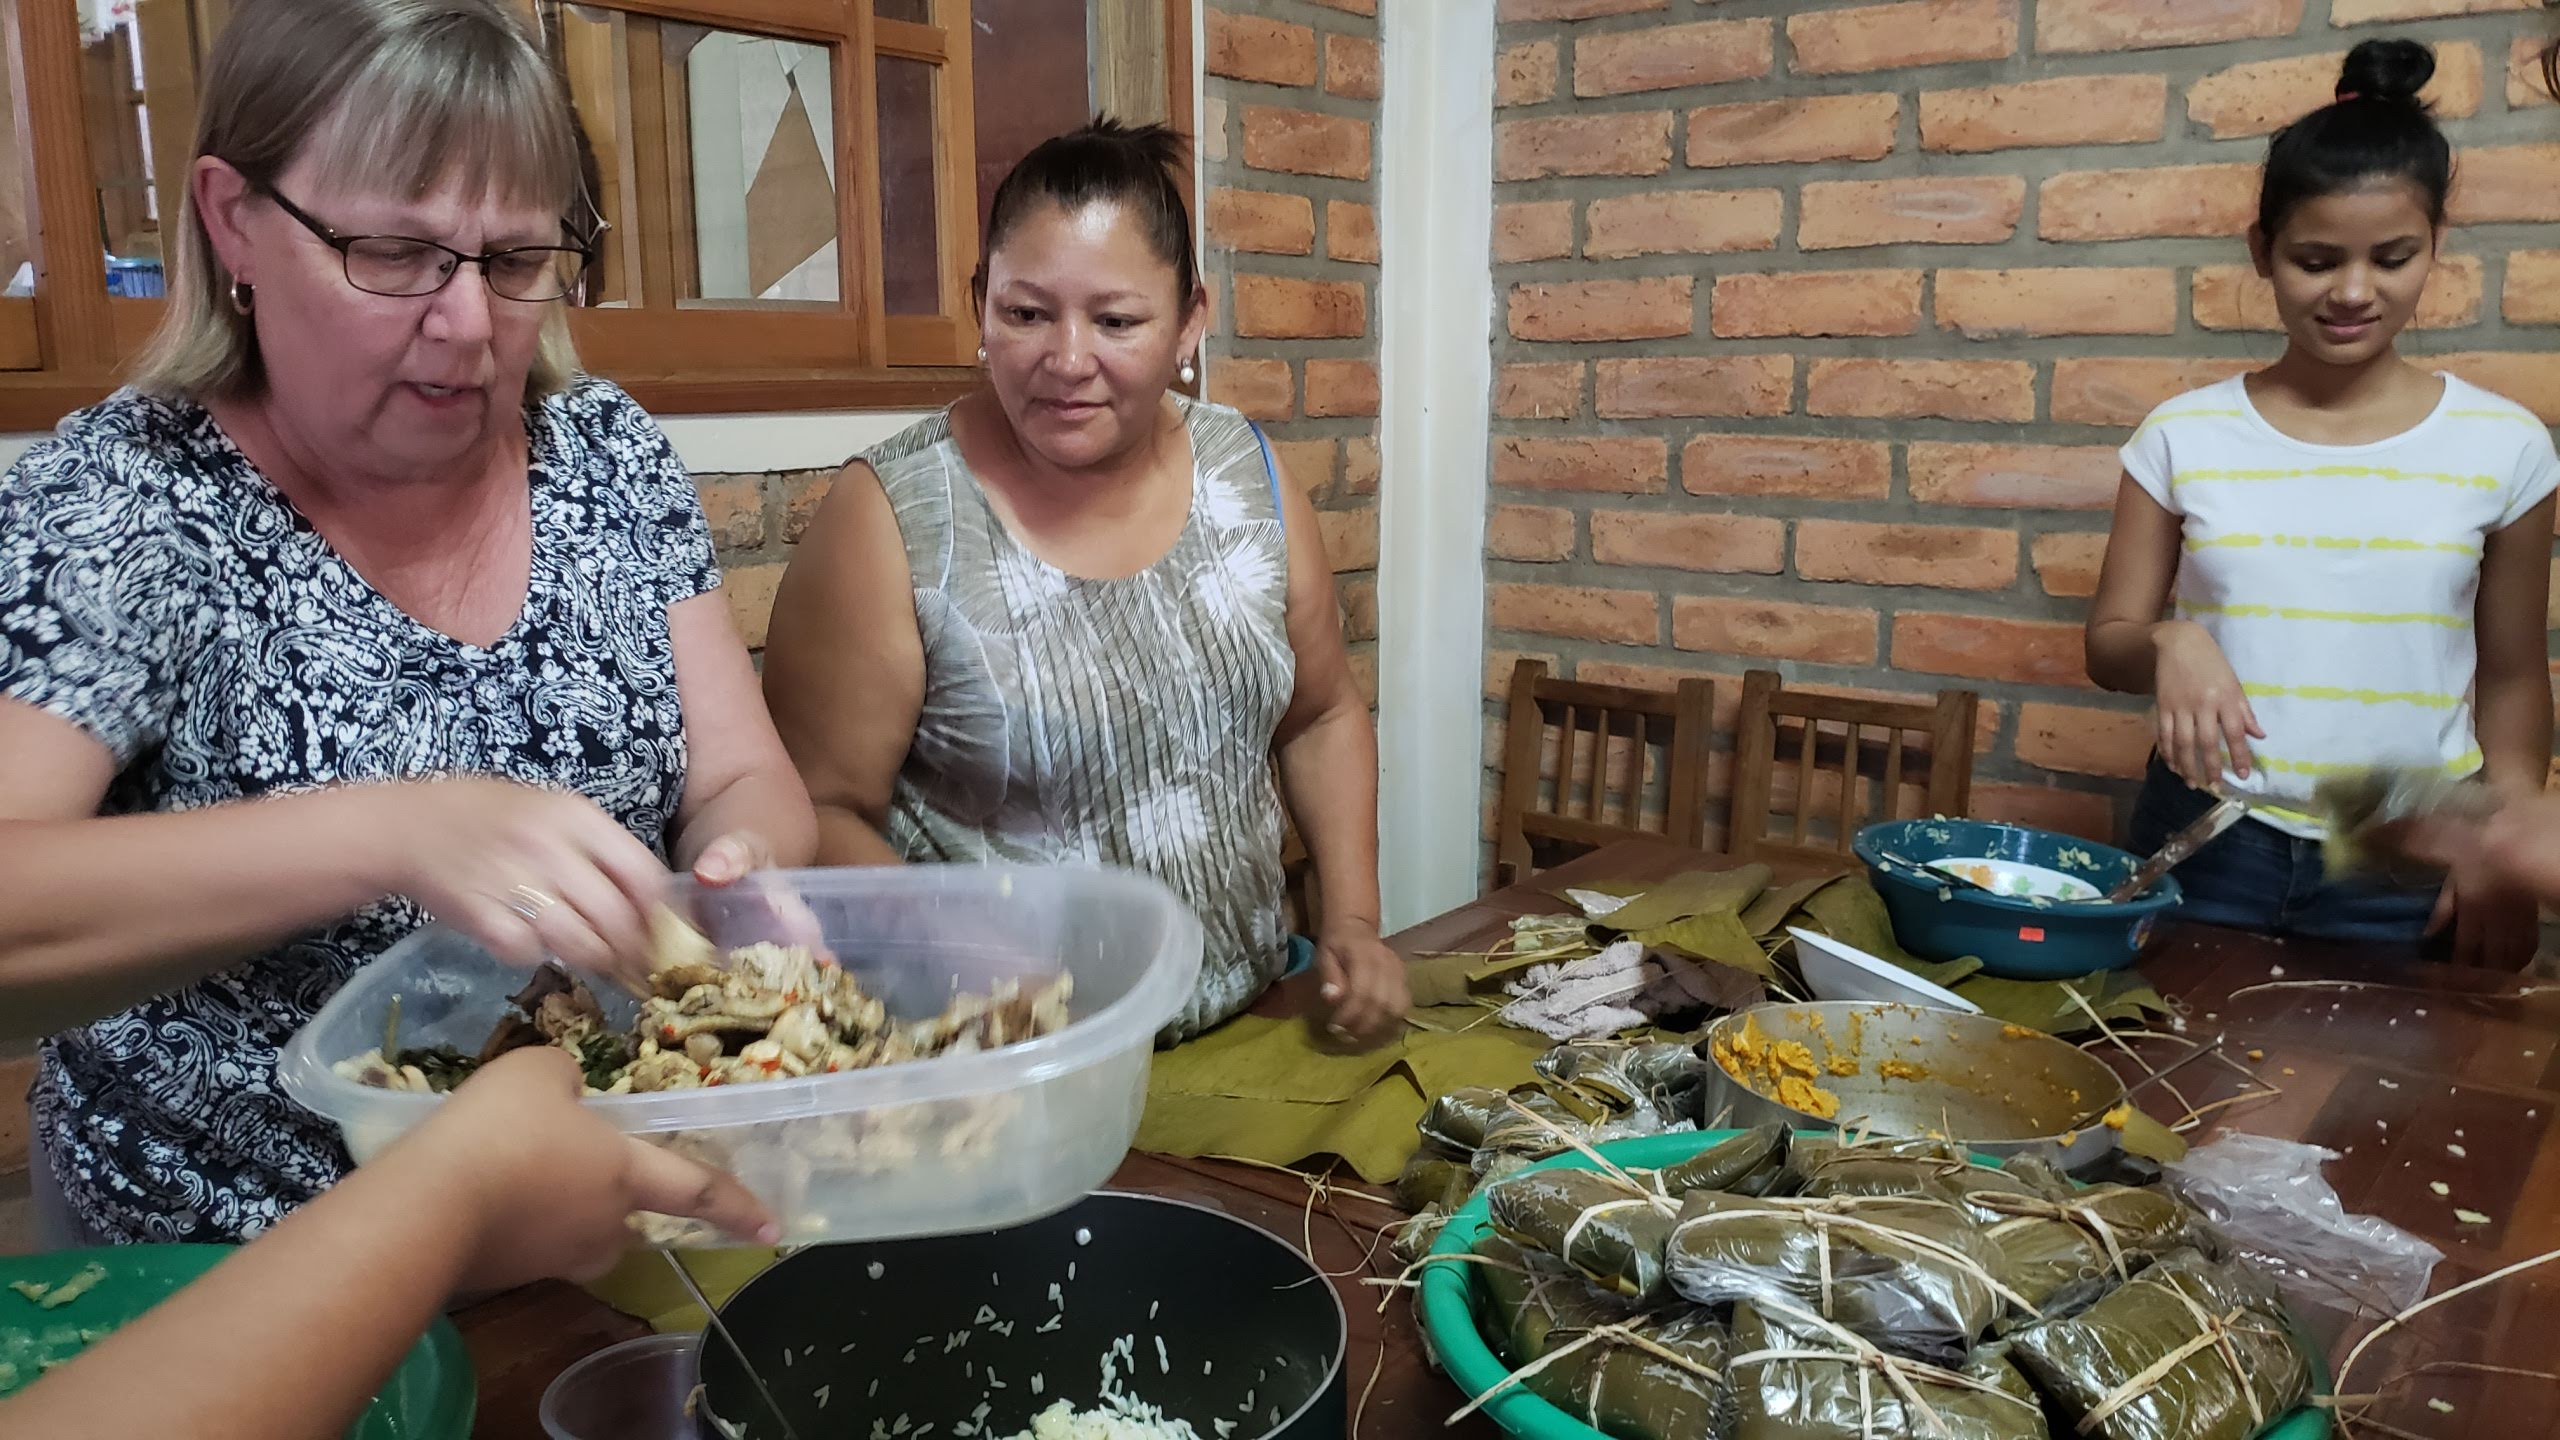 Chispa Project volunteer Becky Burkes and Honduran Presbyterian Church member Liseth Samayoa made traditional Honduran dish nacatamales at the Presbyterian retreat center Villa de Gracia. Chispa Project, a non-profit organization that installs libraries in public schools in Honduras, became the first non-Presbyterian-connected client of the retreat center in March.